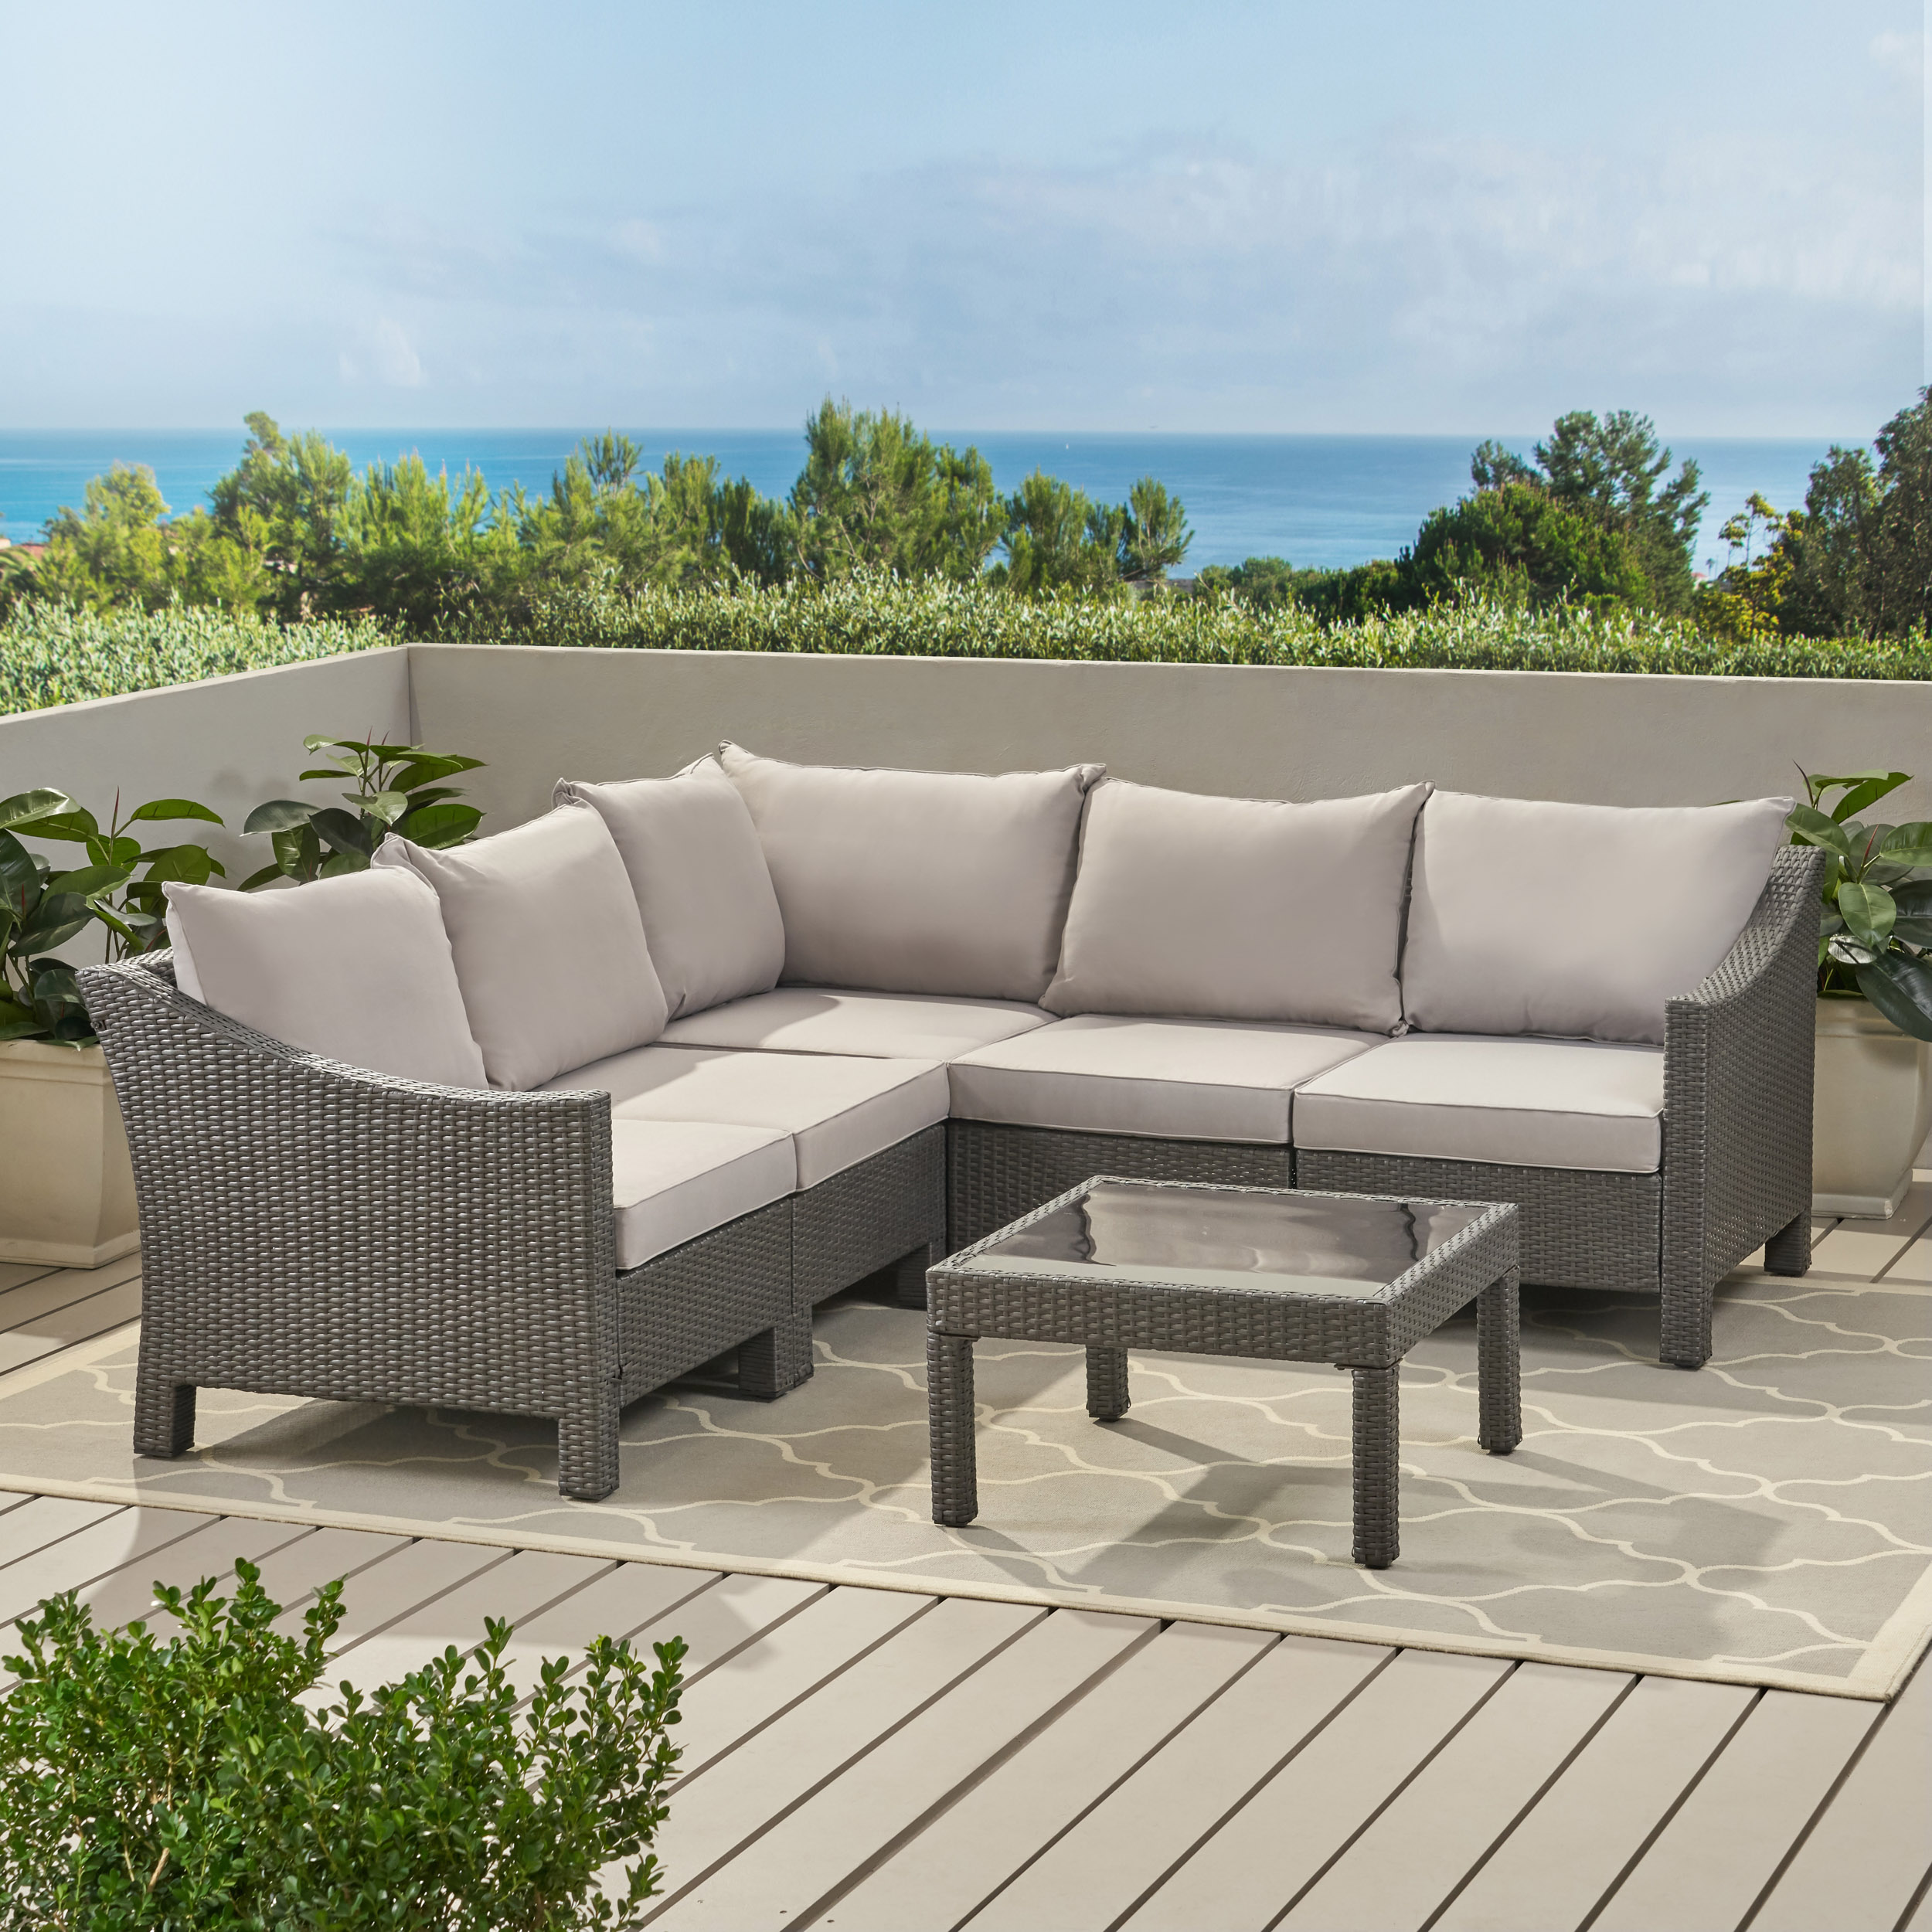 Caspian 6 Piece Outdoor Wicker